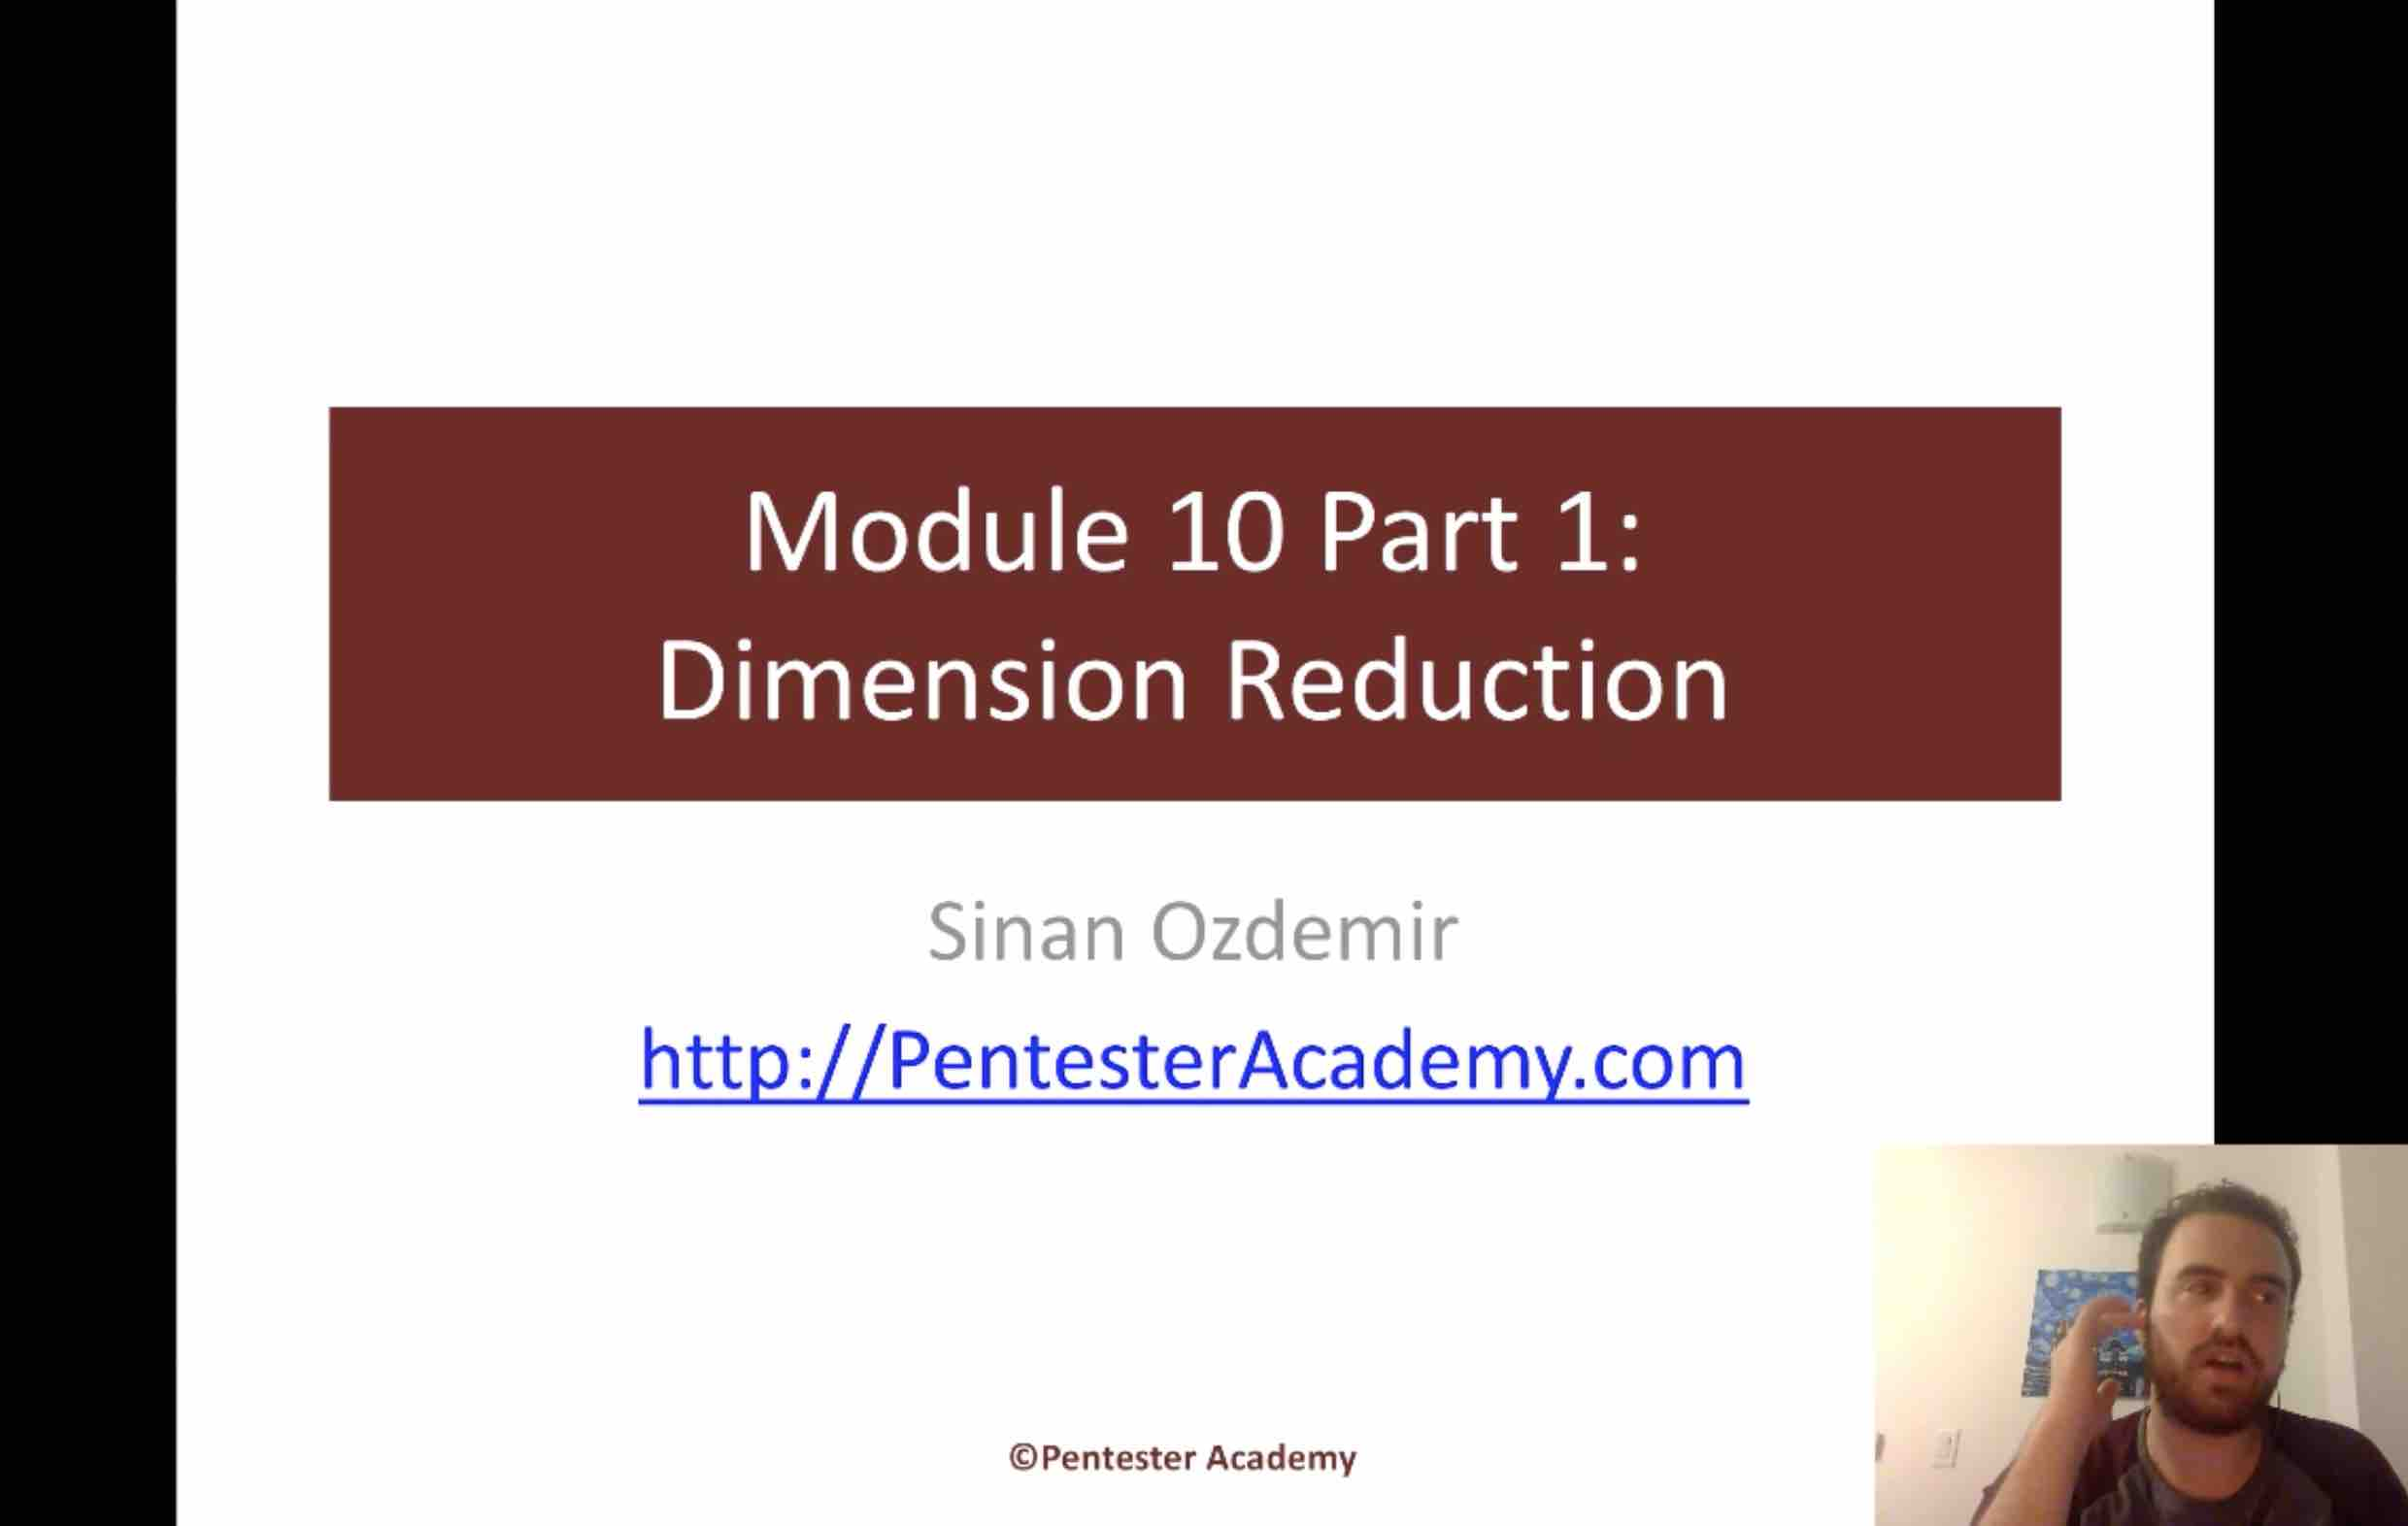 Module 10: Dimension Reduction Part 1